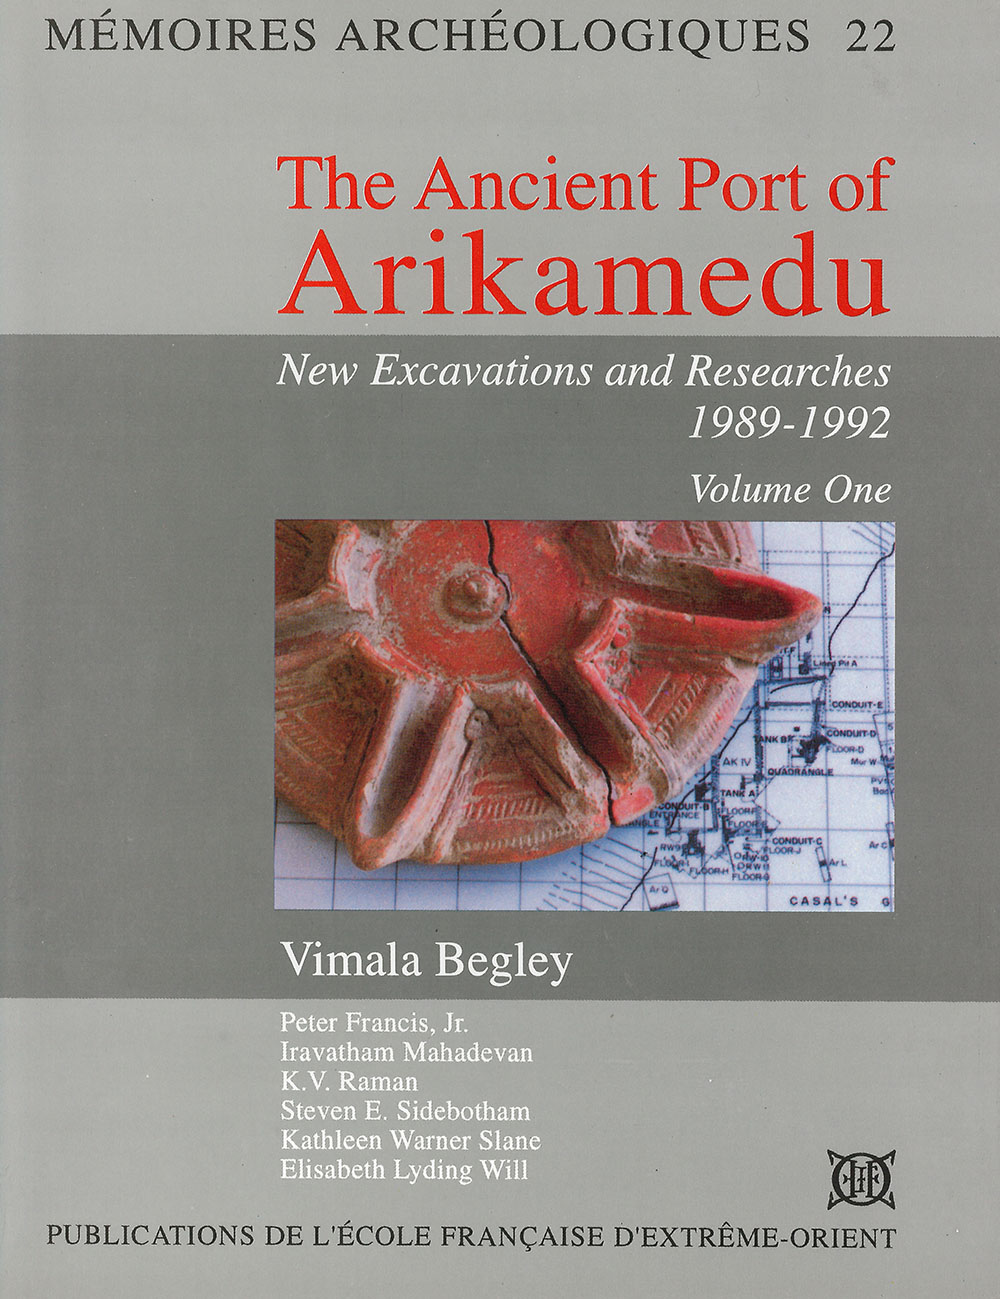 The Ancient Port of Arikamedu : New Excavations and Researches 1989-1992